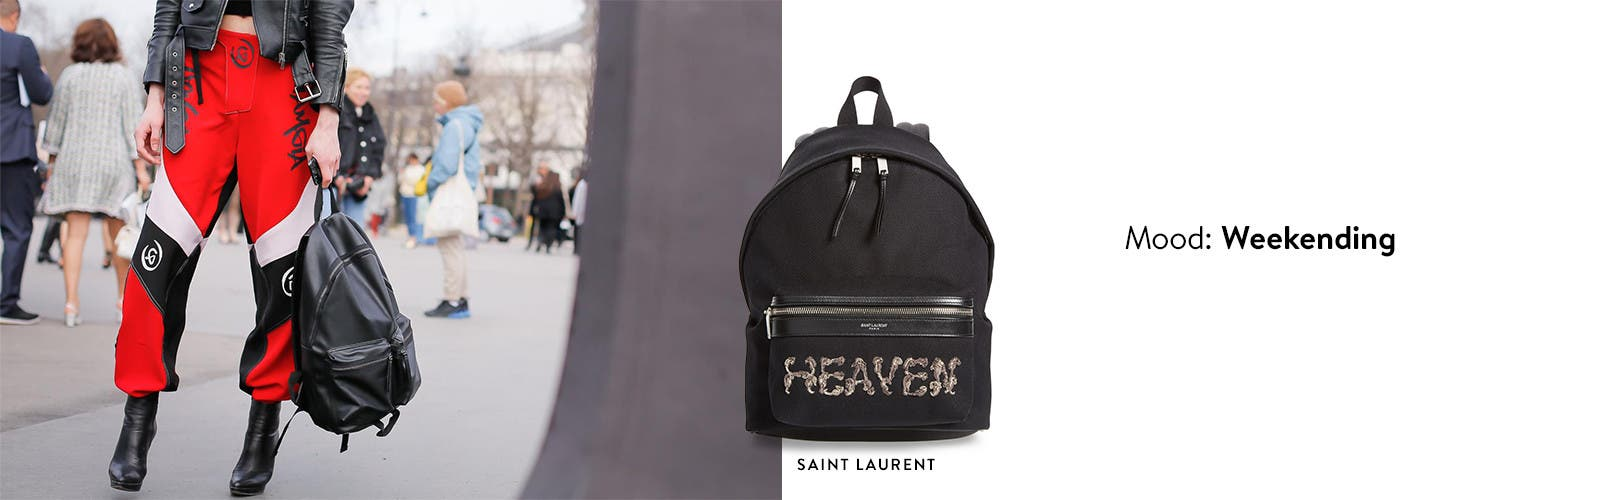 Weekending: designer backpacks from Saint Laurent and more.